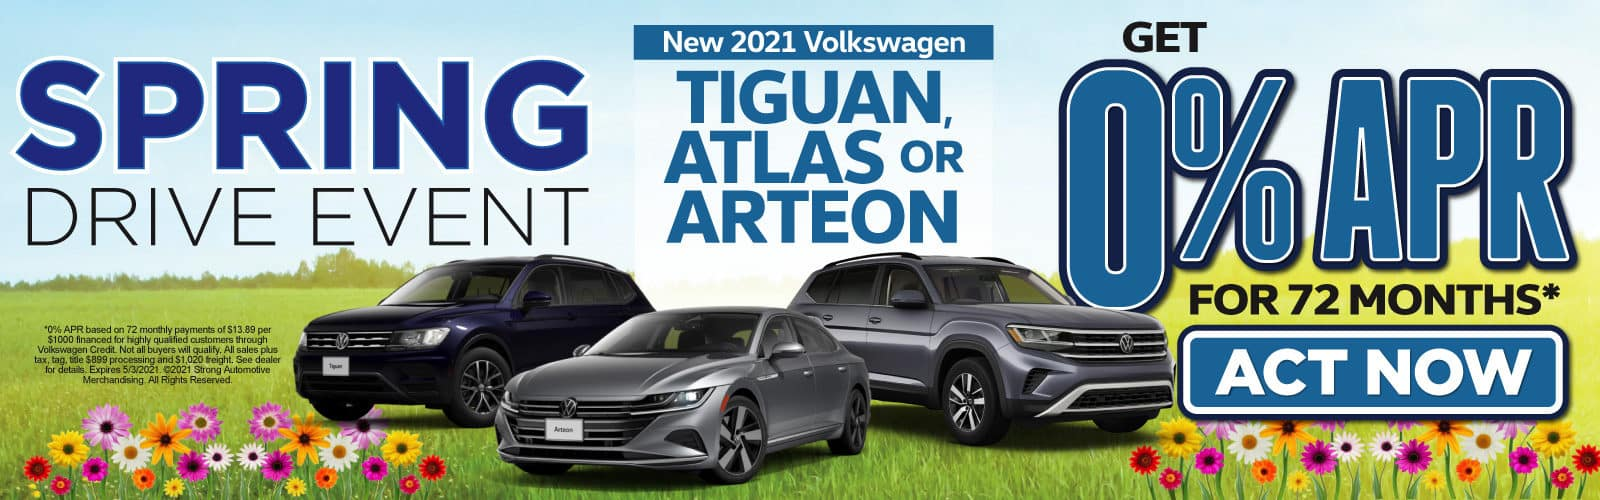 New 2021 VW Tiguan, Atlas or Arteon - 0% APR for up to 72 months - Act Now